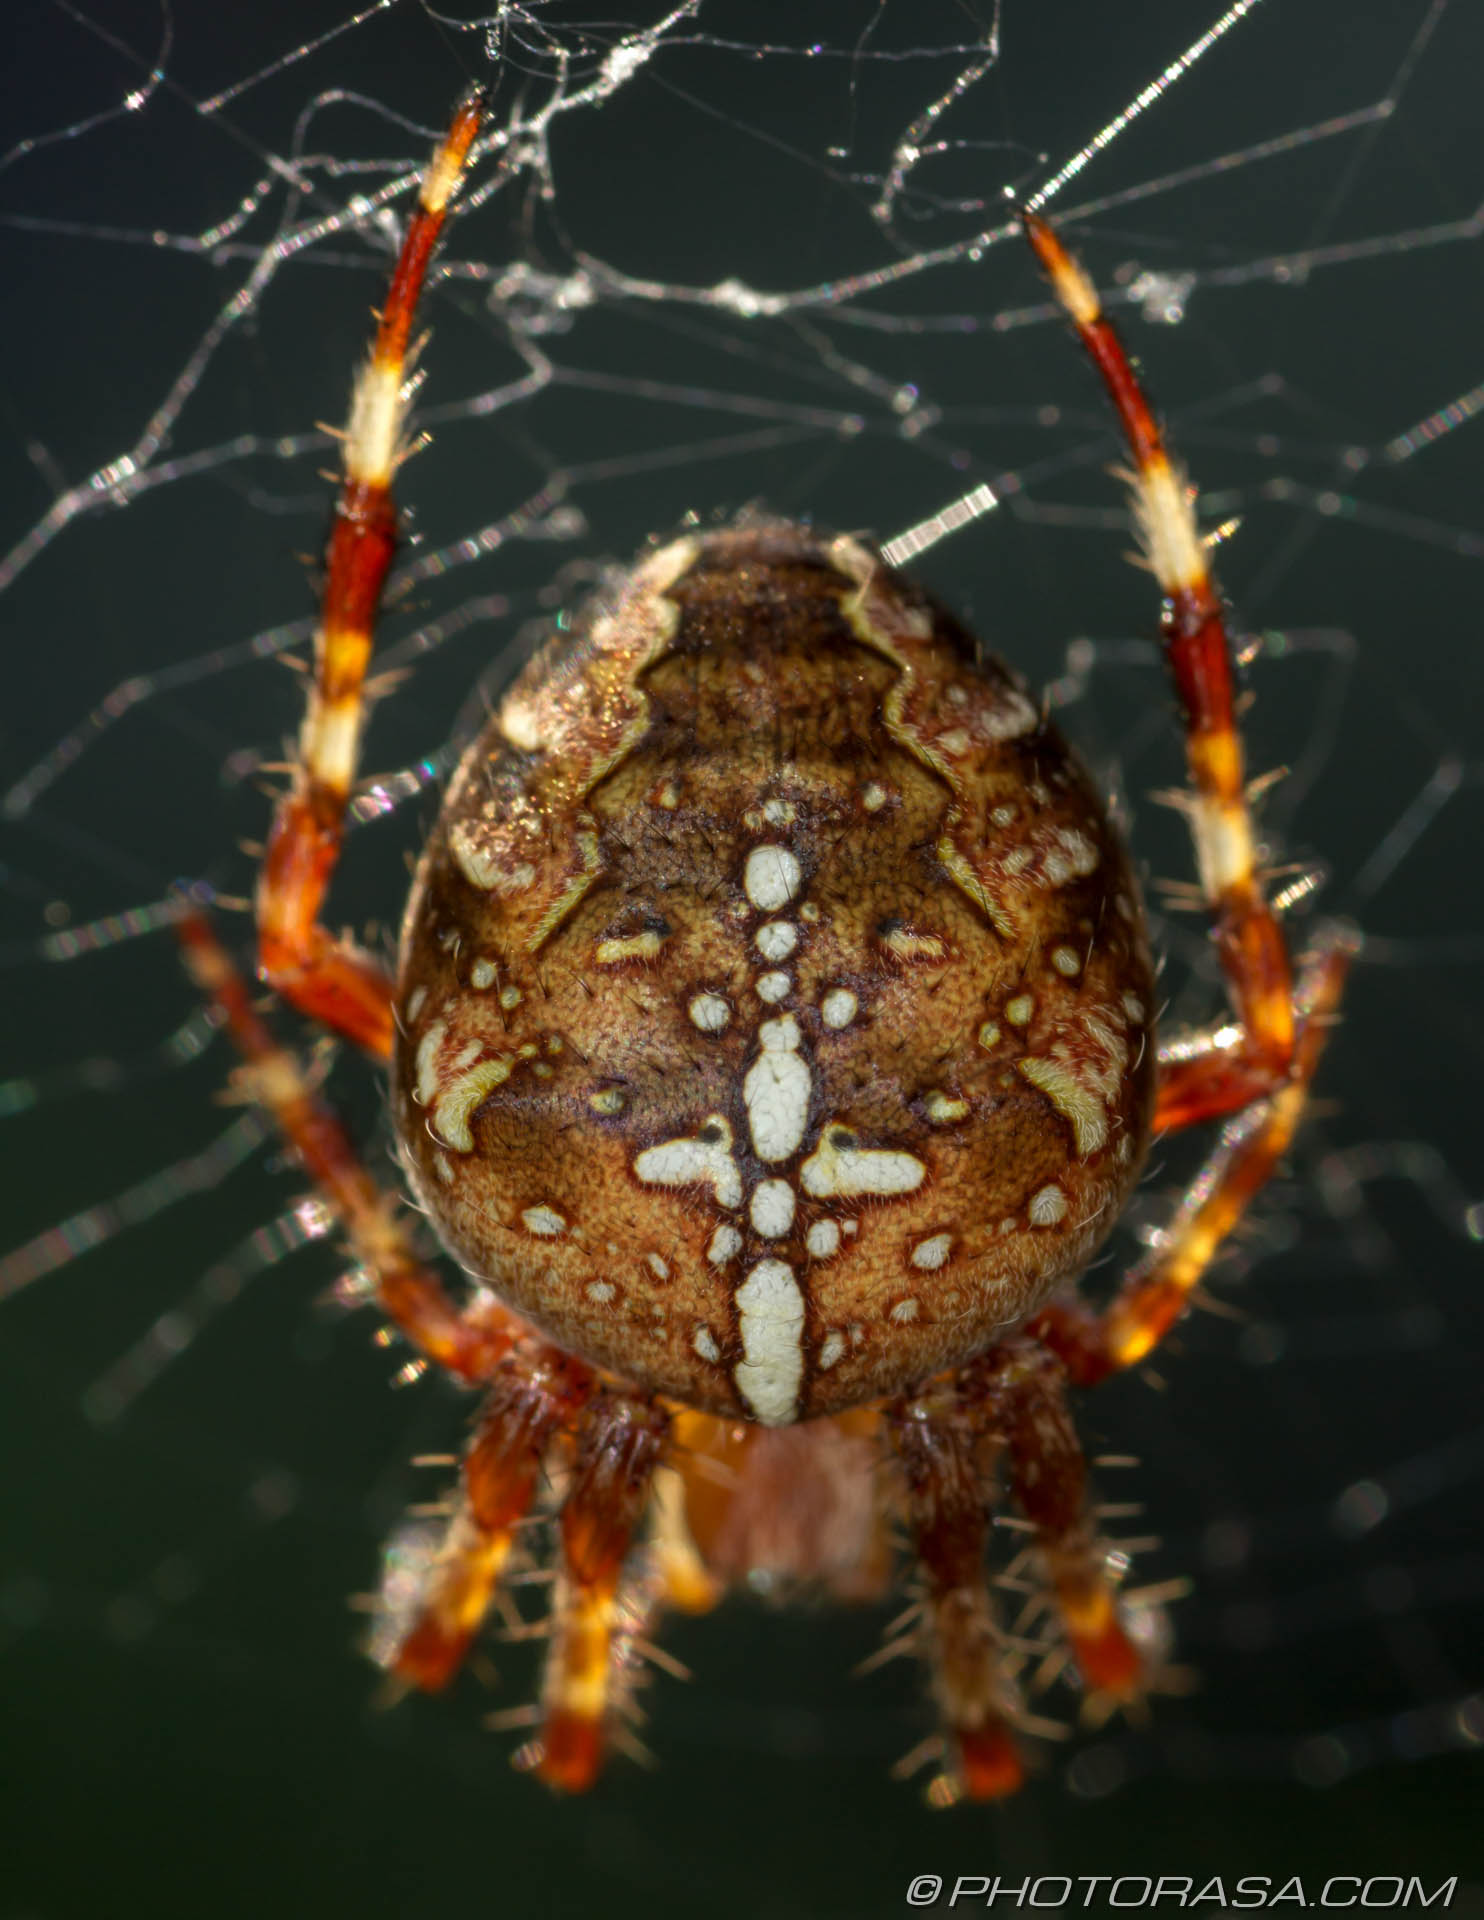 http://photorasa.com/garden-spiders/abdomen-pattern-of-orange-cross-spider/